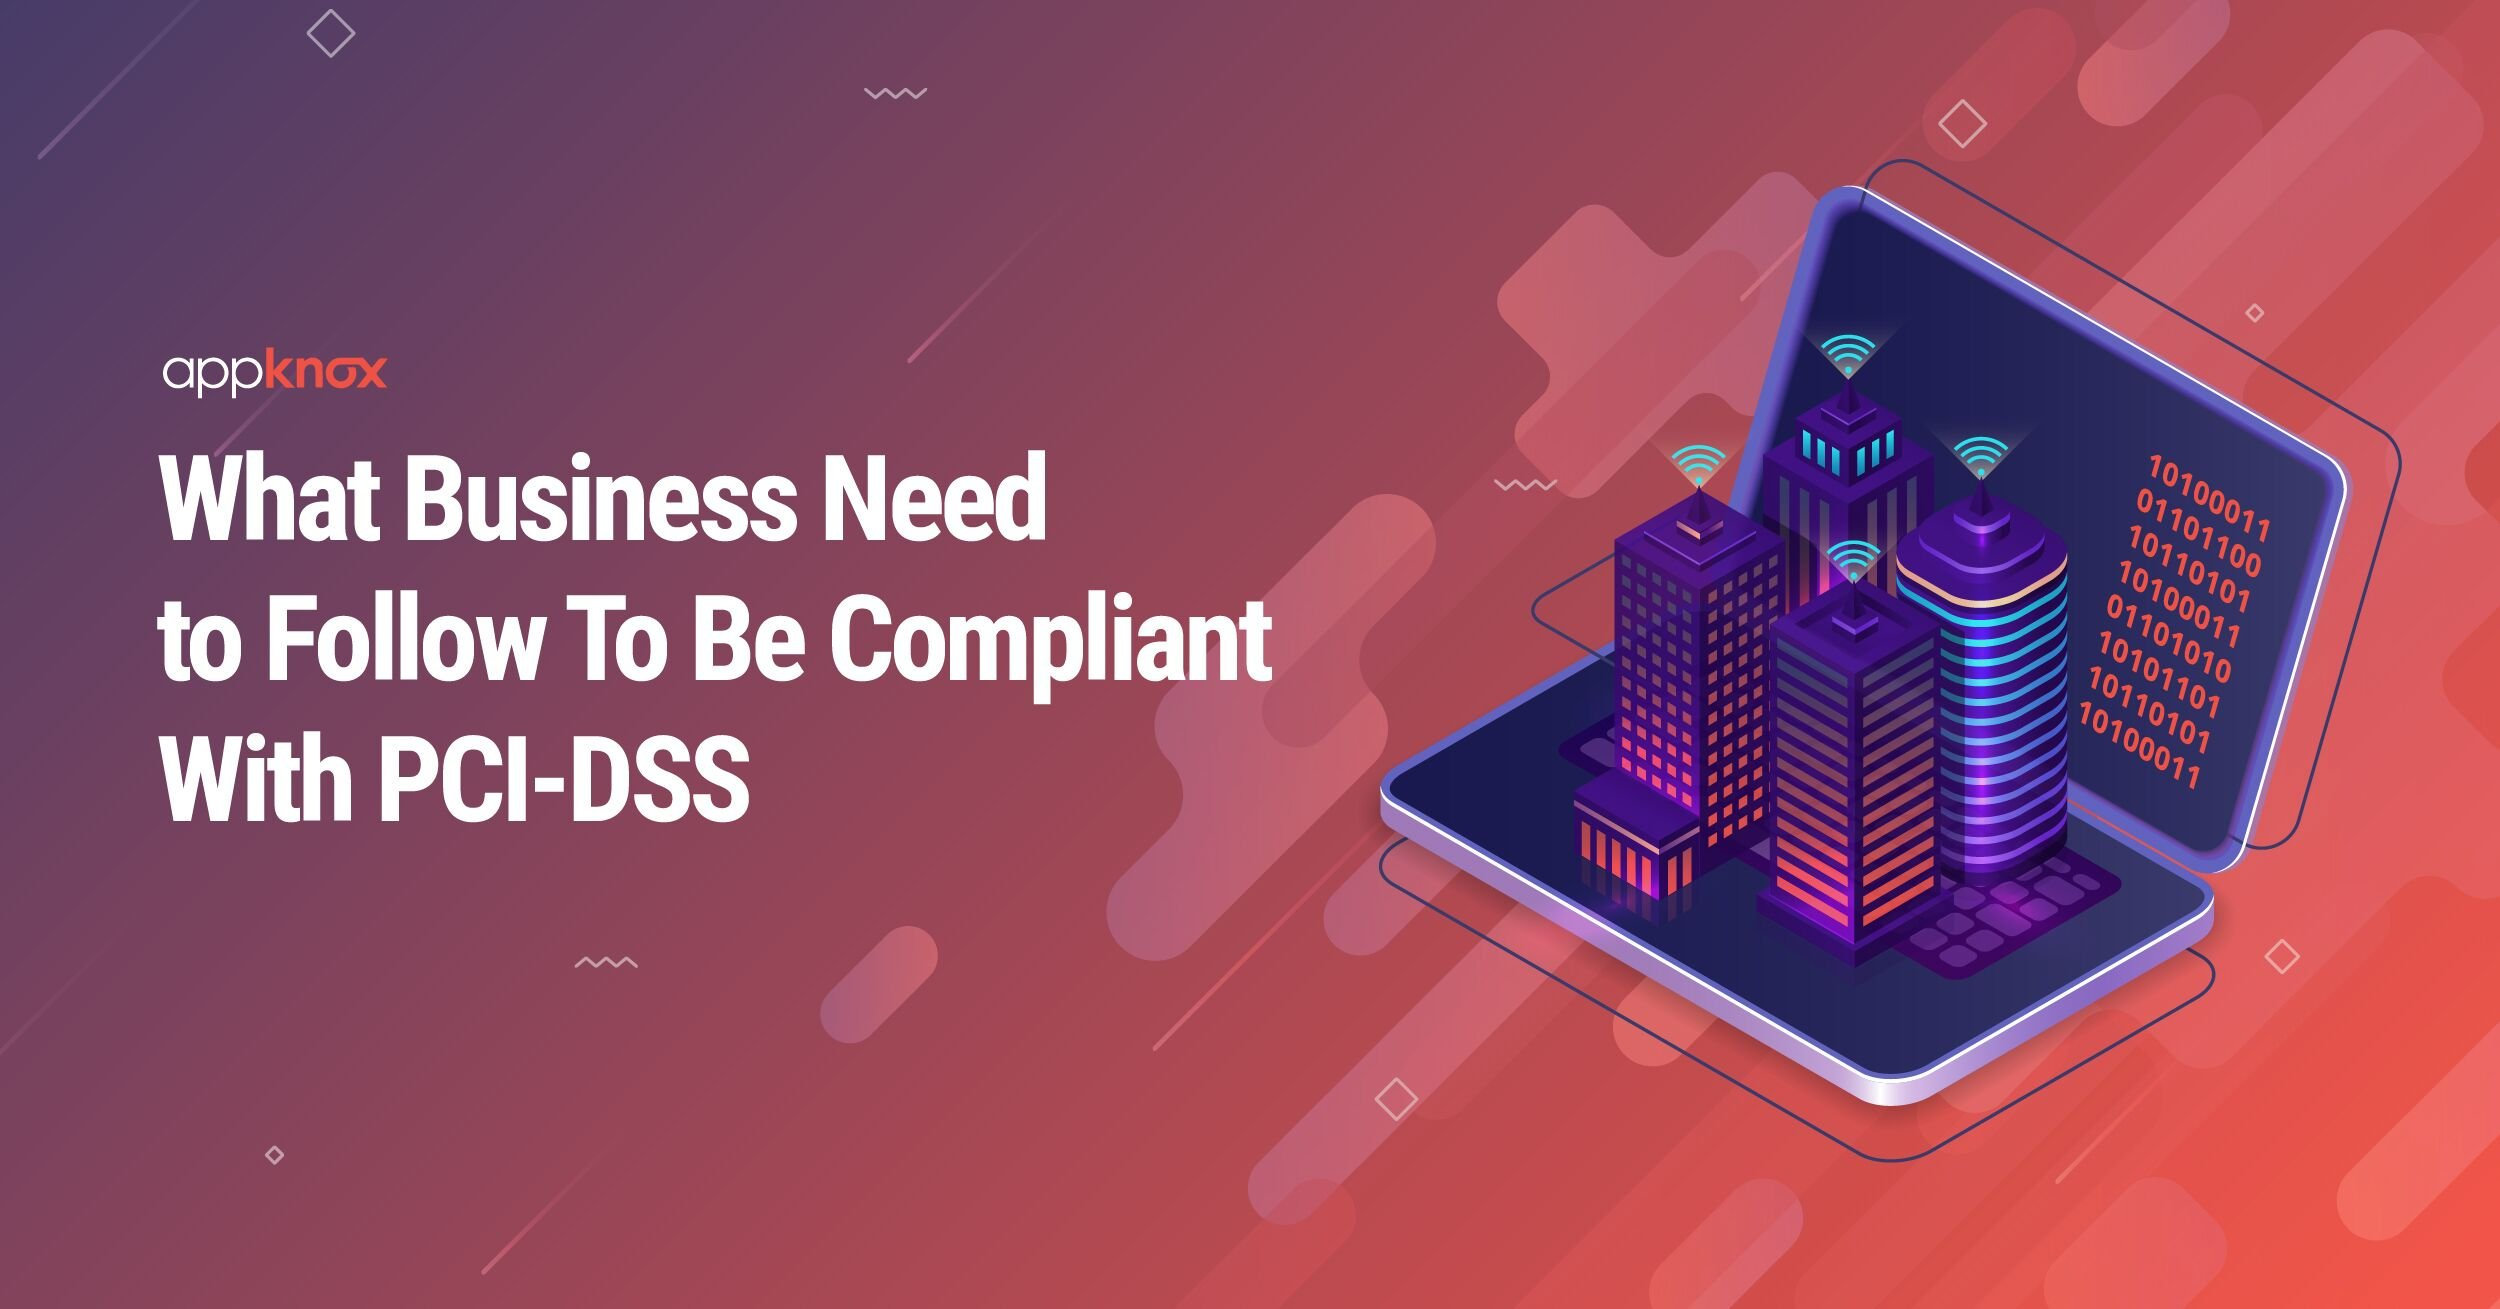 What Businesses Need To Follow To Be Compliant With PCI DSS